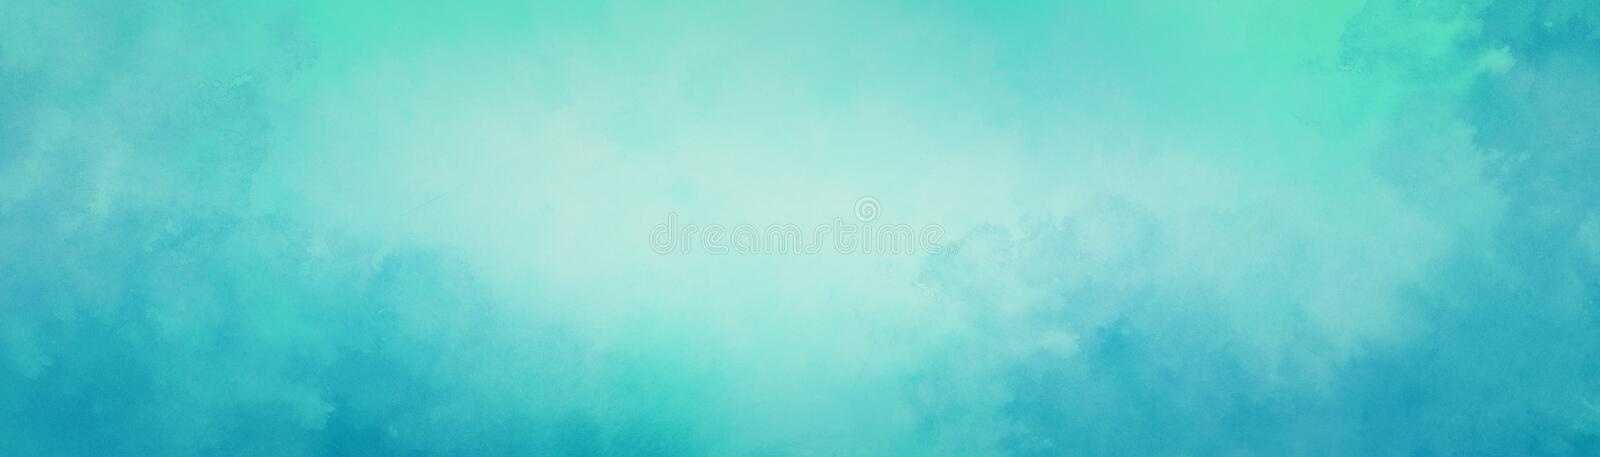 Blue green watercolor background with texture and abstract white center and cloudy painted border stock photo